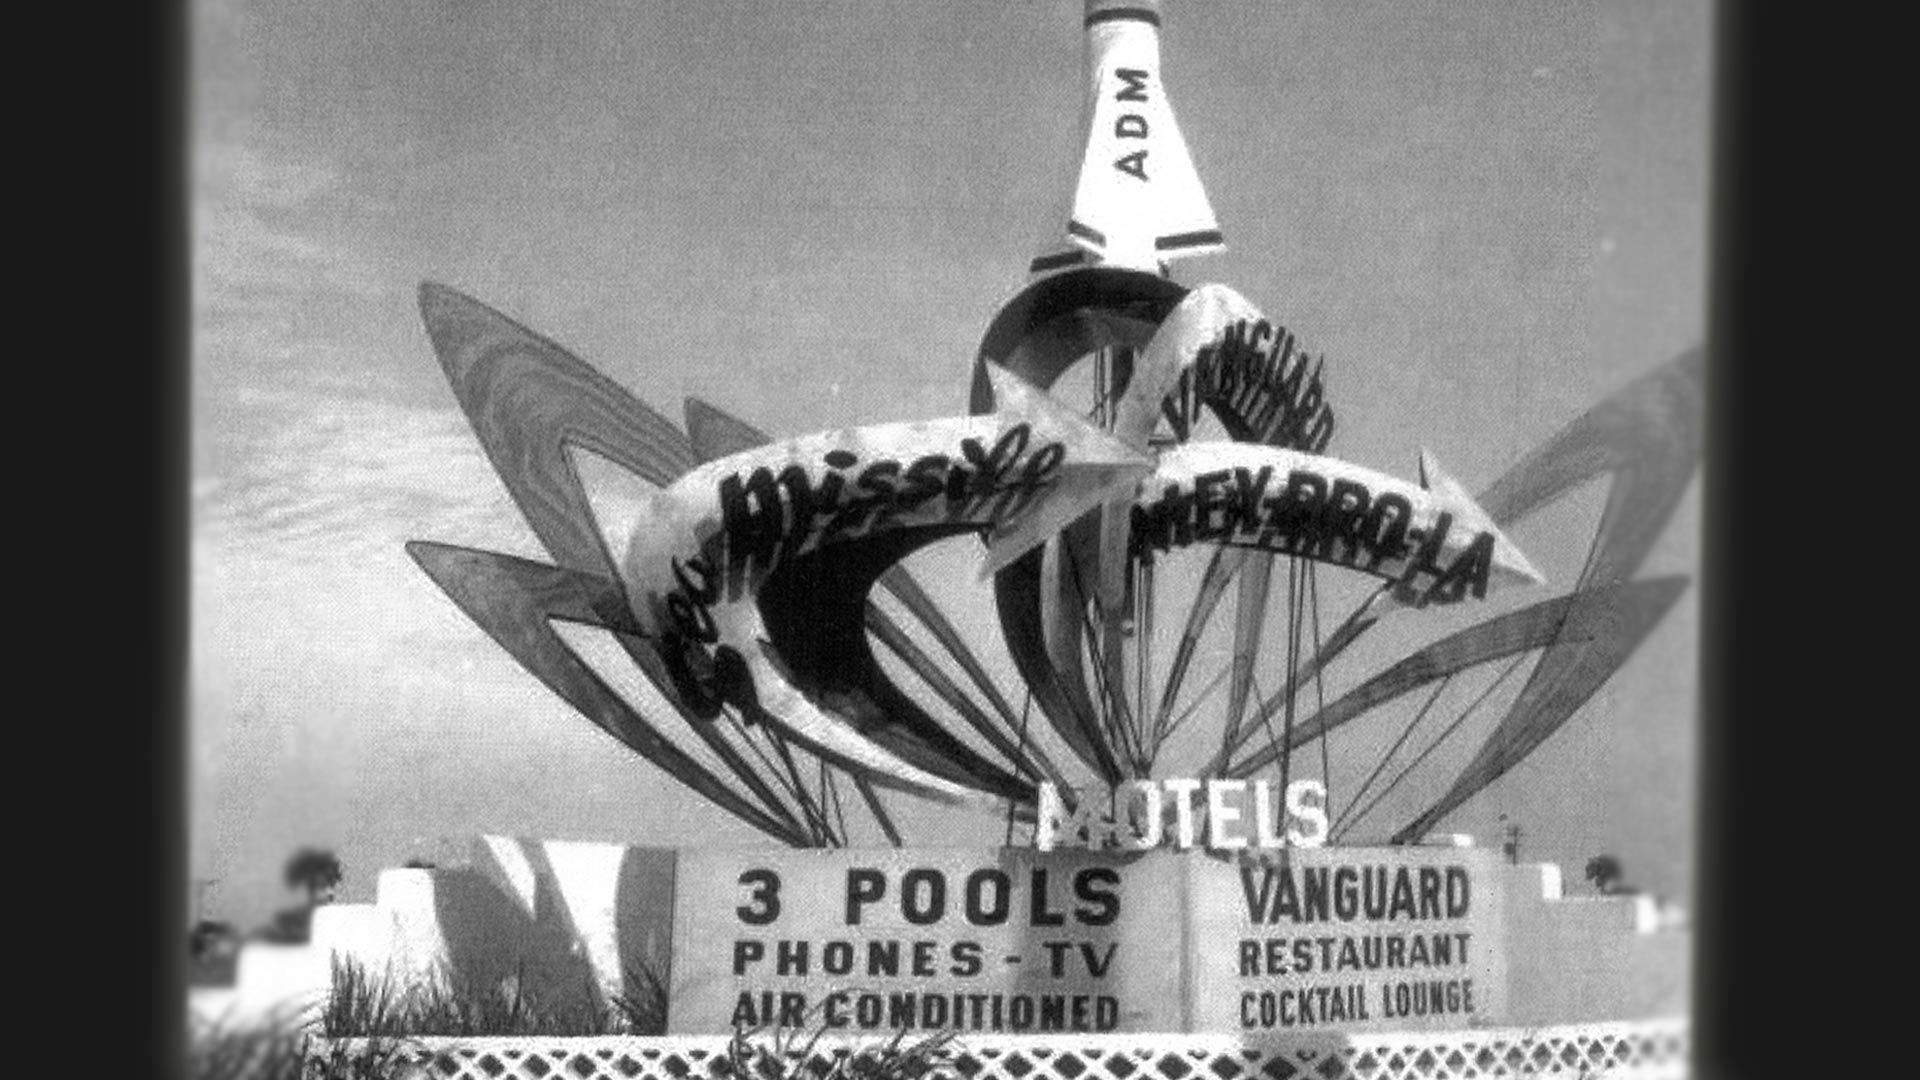 One of the many space-themed hotels from the 1960s.